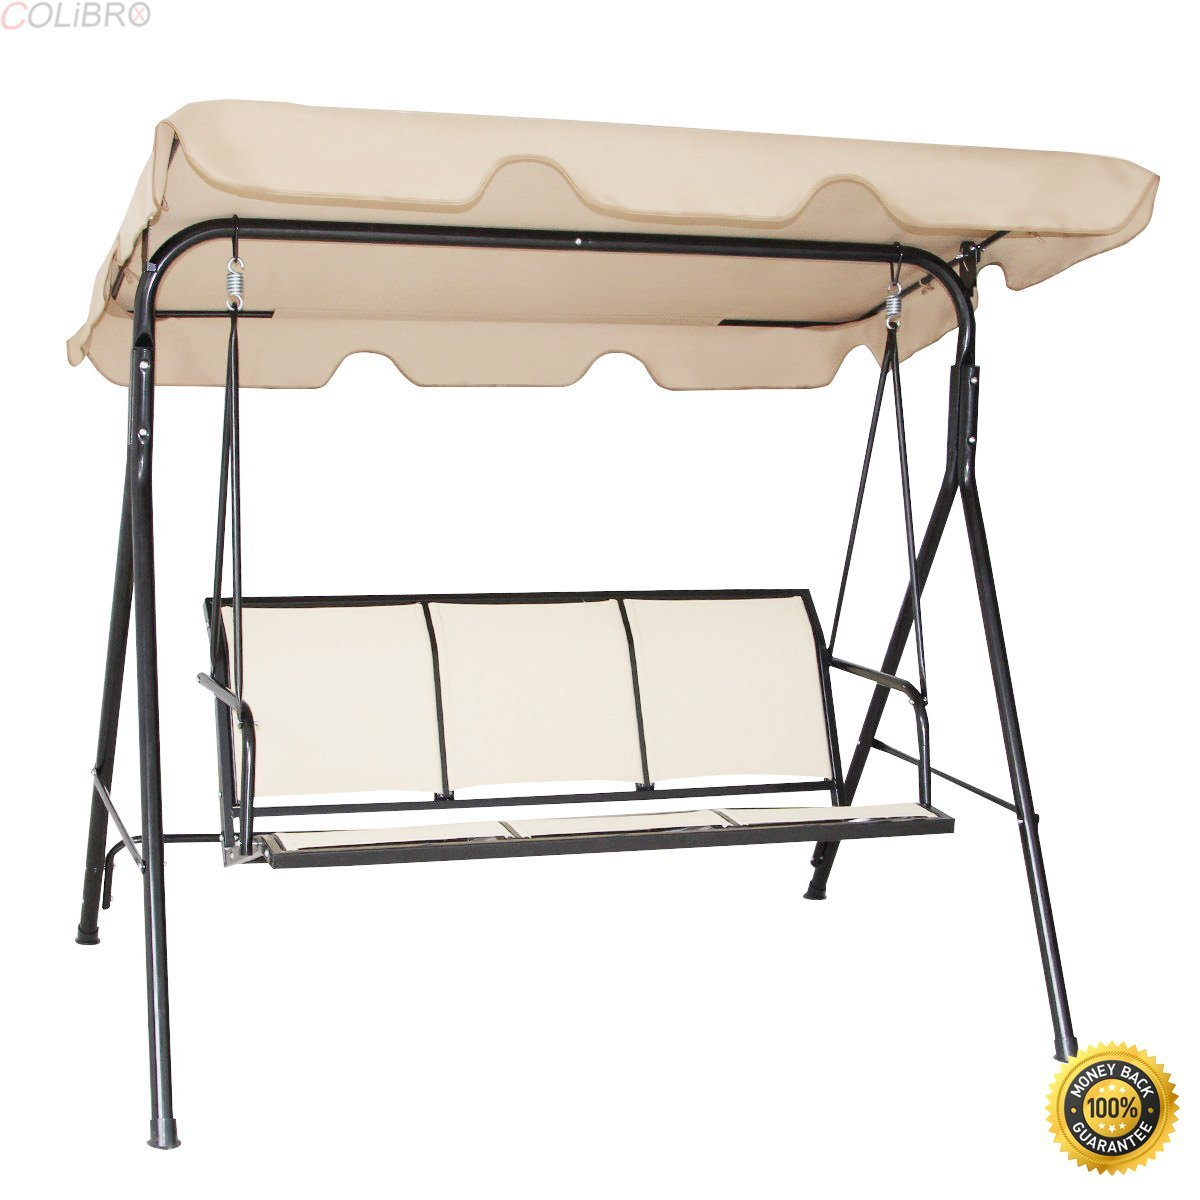 Cheap 3 Person Outdoor Swing With Canopy, Find 3 Person Regarding 3 Person Brown Steel Outdoor Swings (View 9 of 25)